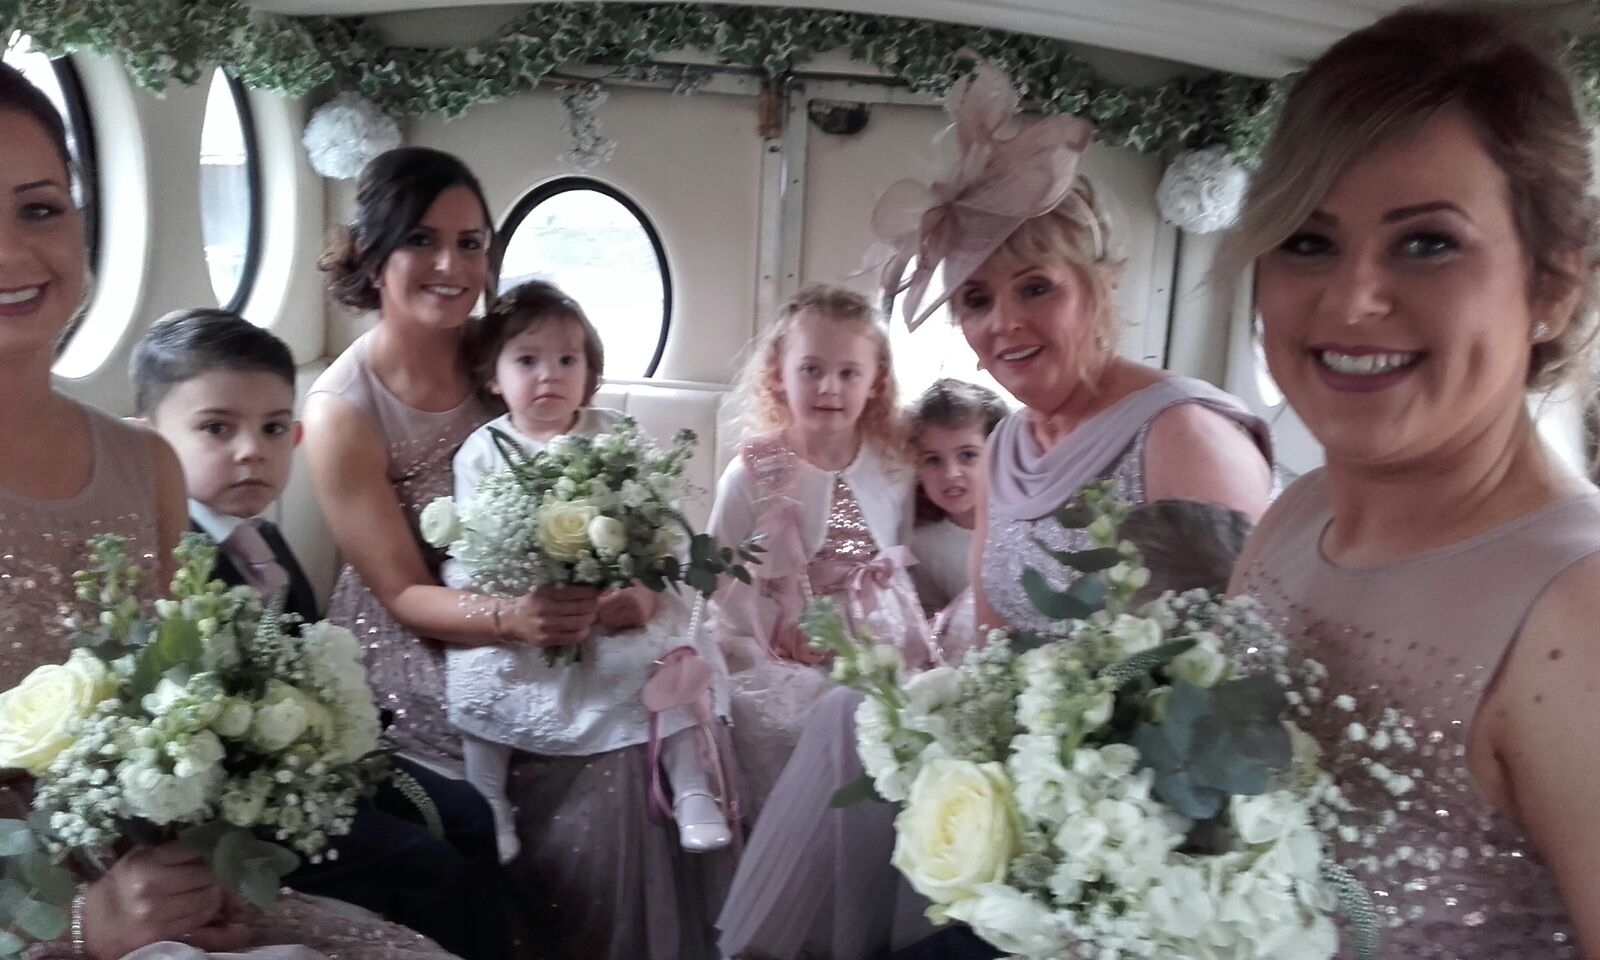 Monty Wedding Car Hire